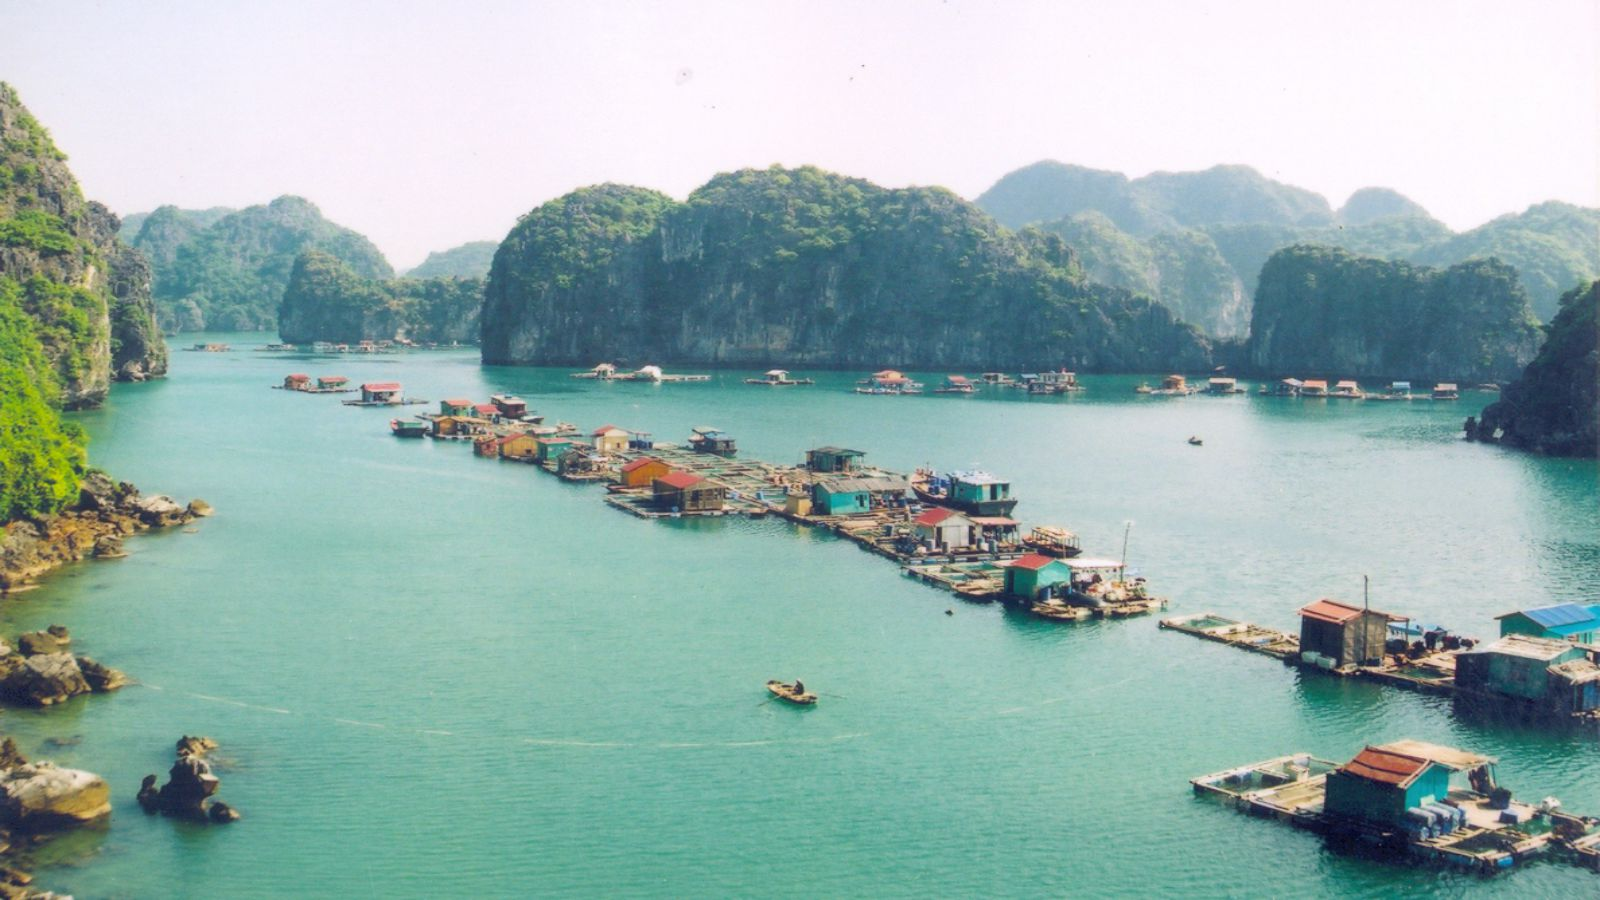 Only Ha Long Bay, Vietnam has a surprisingly beautiful Lan Ha Bay